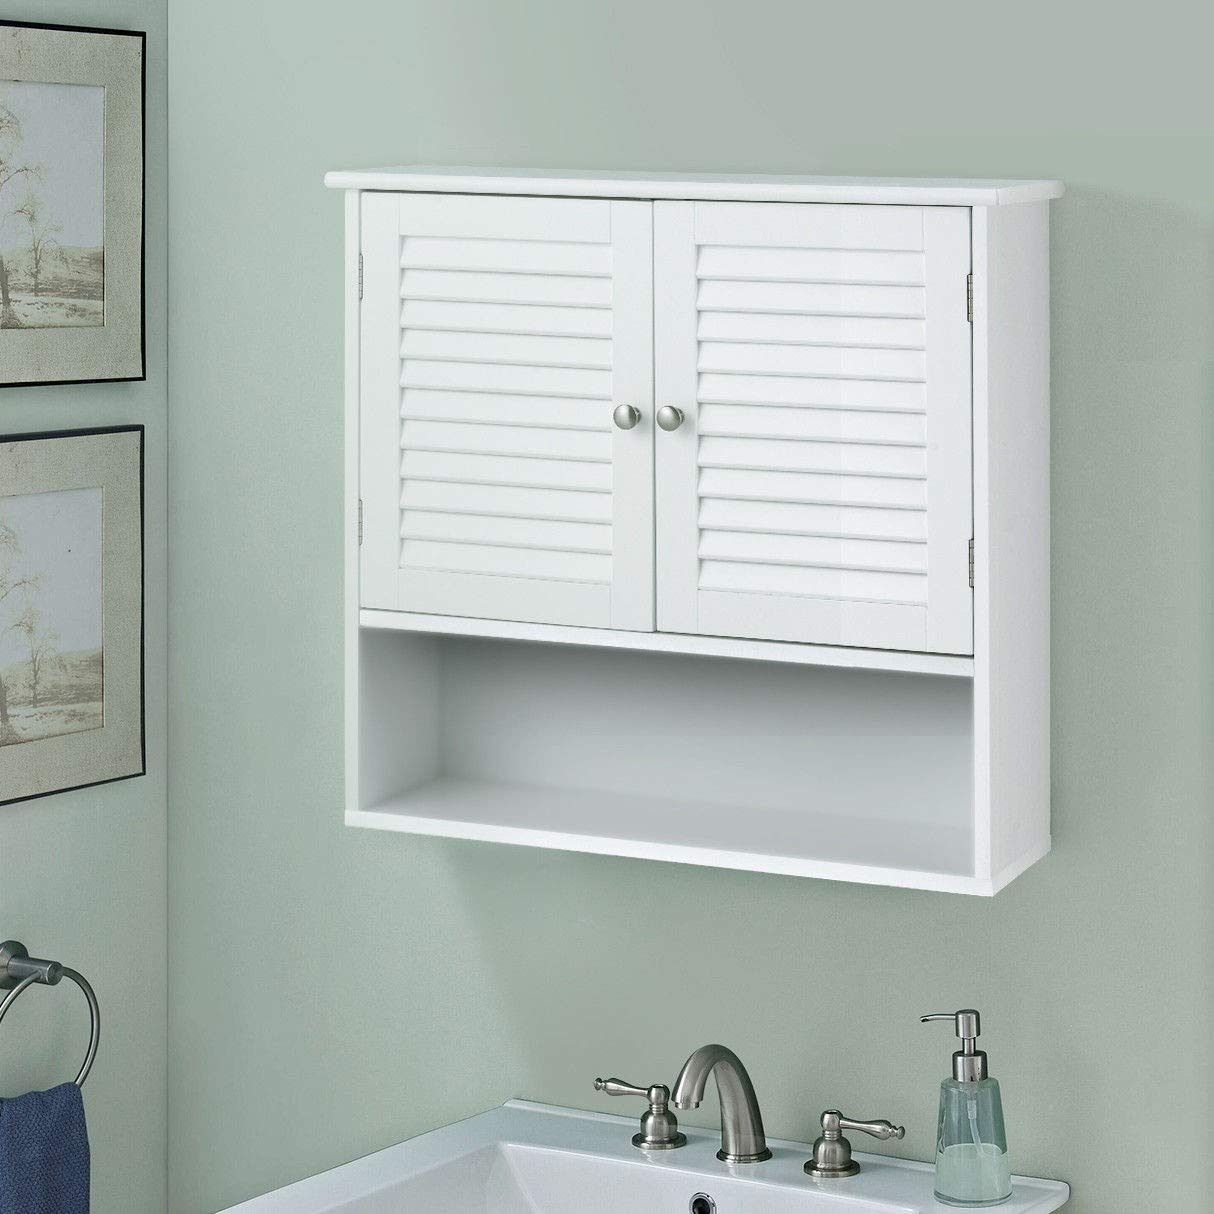 WATERJOY Storage Cabinet, Bathroom Wall Cabinet with Shutter Doors and Shelves, Cabinet Cupboard for Bathroom, Kitchen Room and Living Room, White